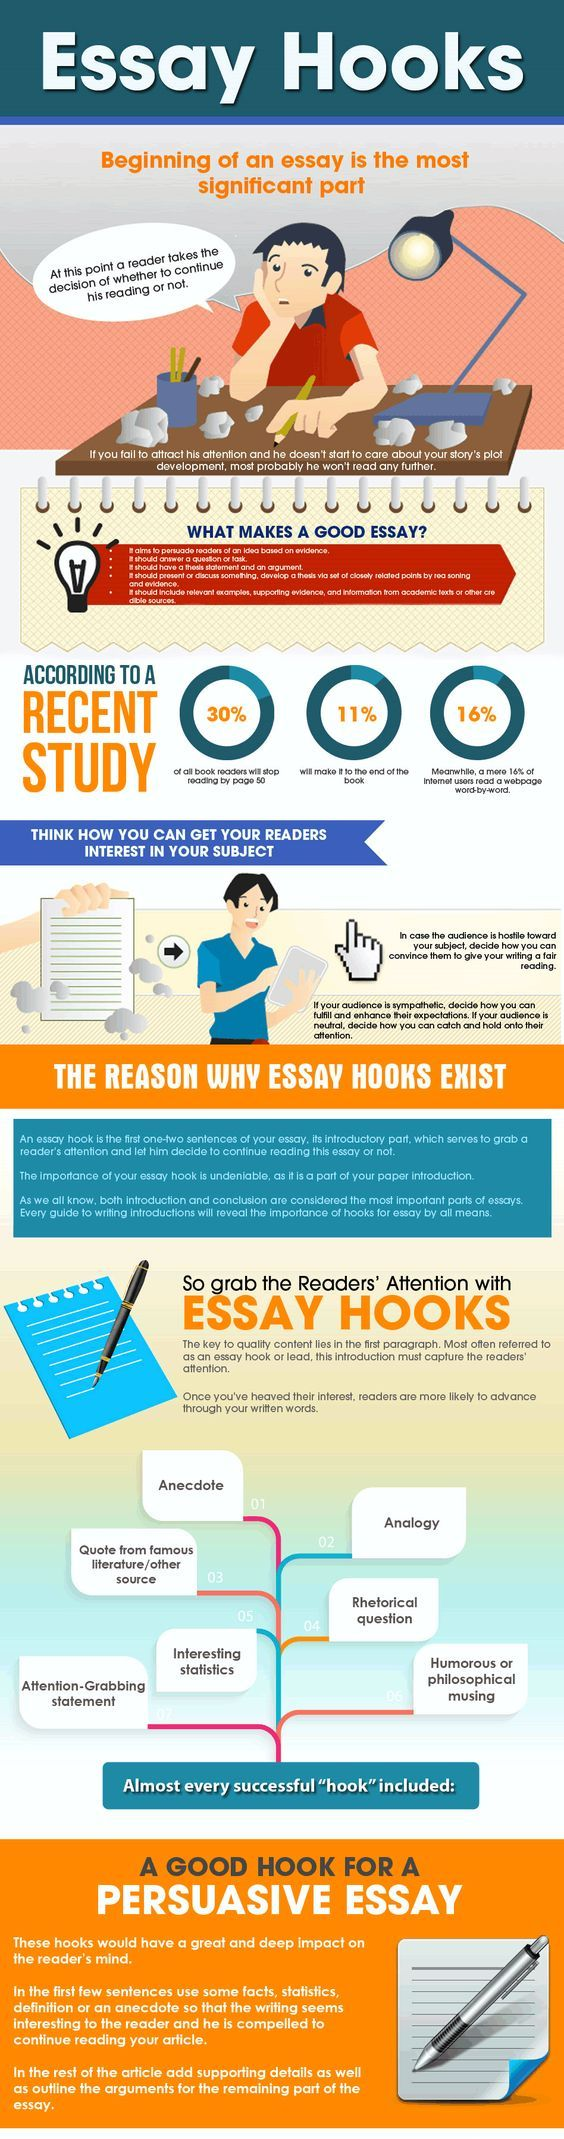 Short English Essays Essay Hooks Infographic Essays For High School Students also Examples Of Thesis Statements For Argumentative Essays How To Start Your Academic Paper With An Incredible Hook  Fastessay Essay Proposal Template